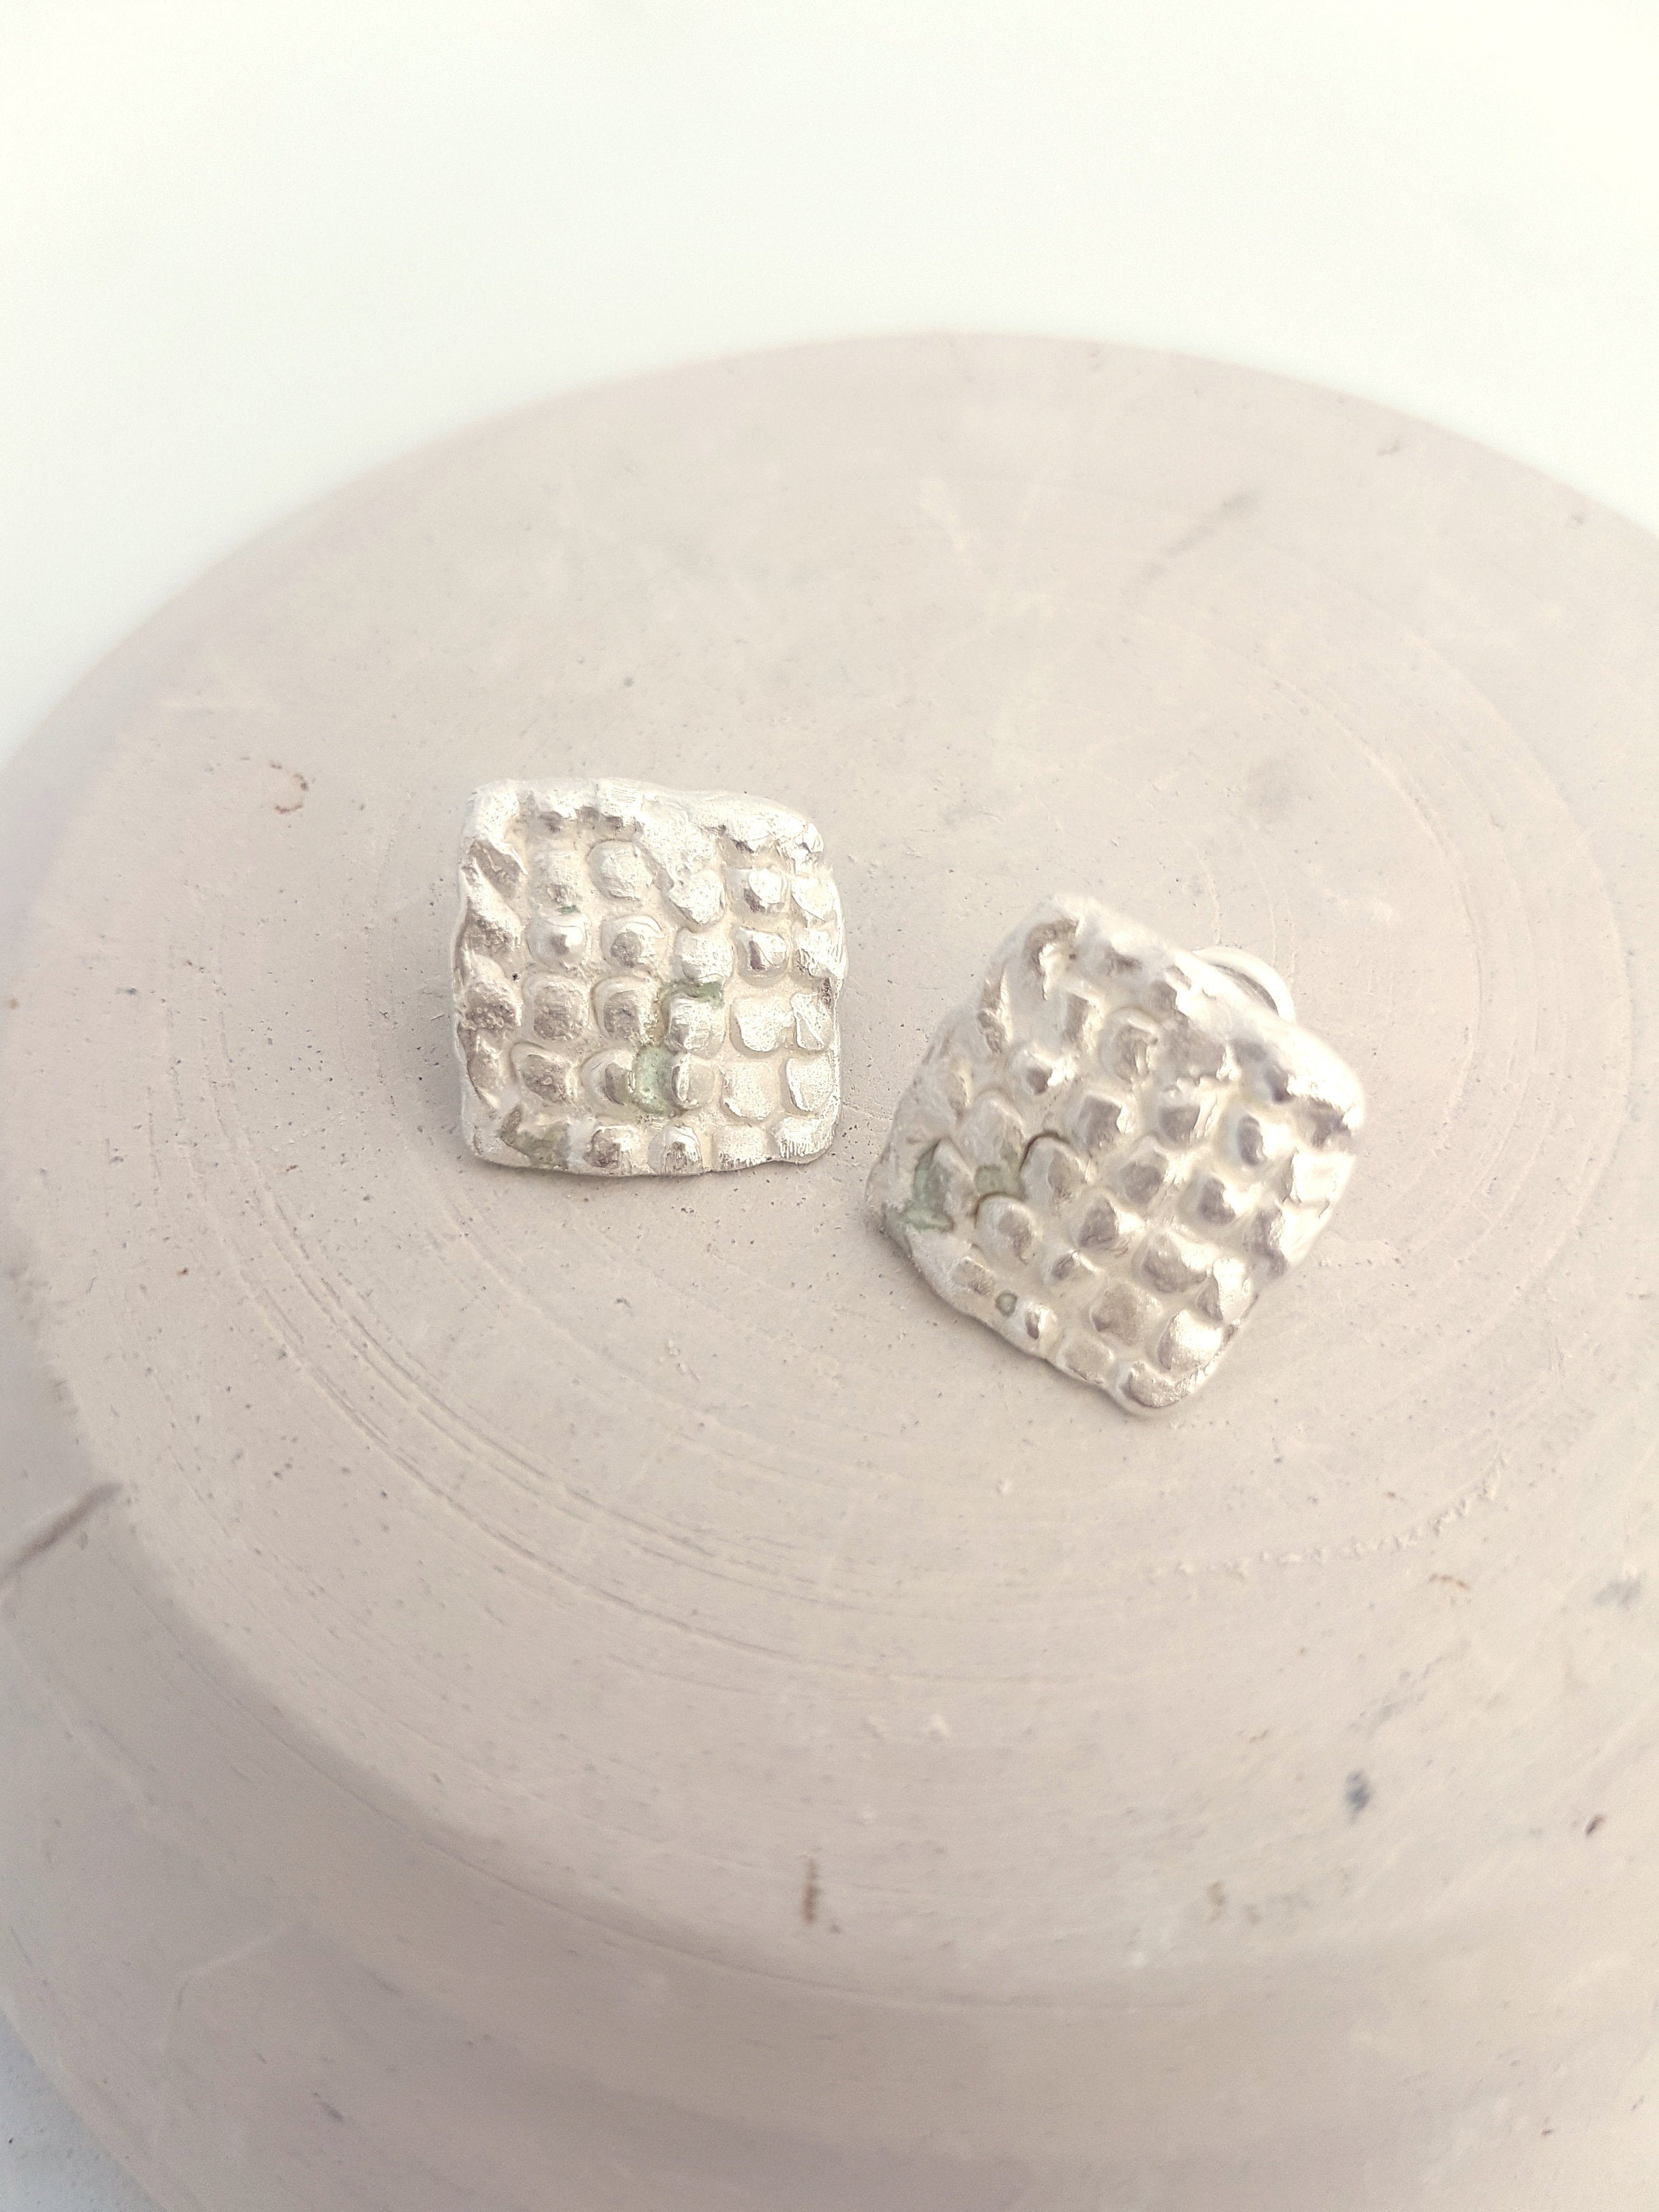 Silver square studs with an organic texture. Textured post earrings in sterling silver